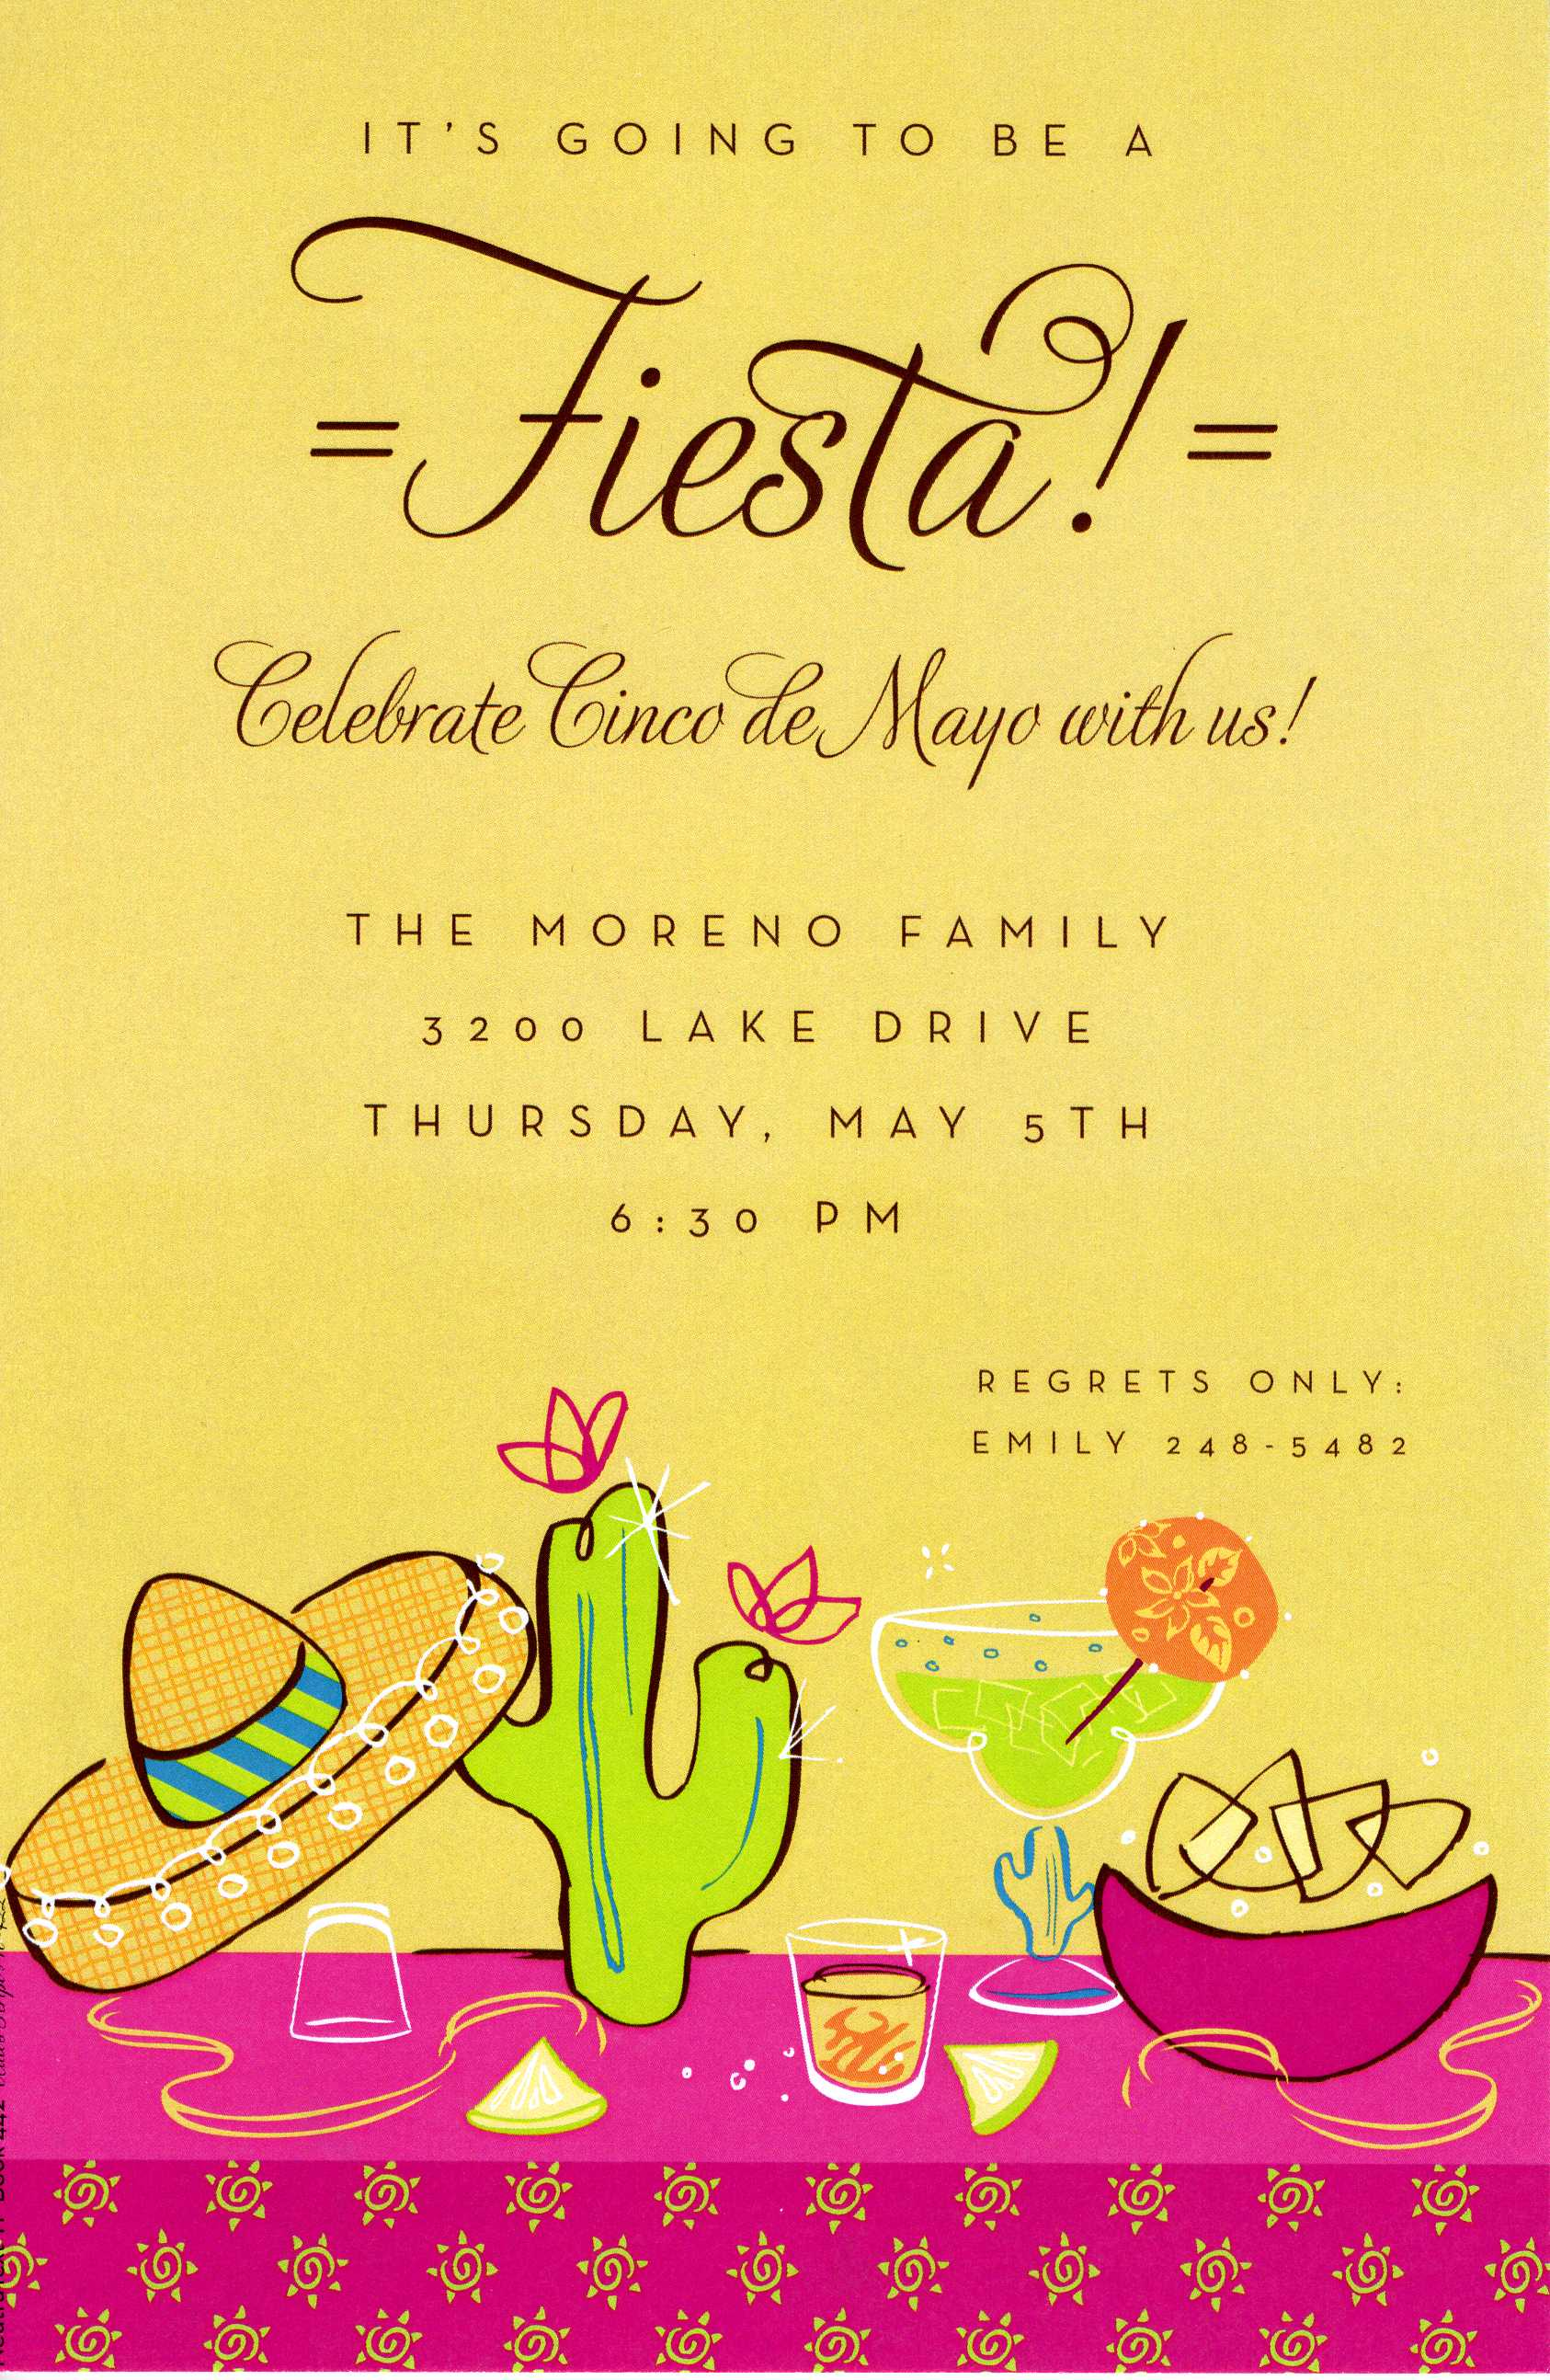 Fiesta Invitation - A bright yellow background accents a cactus, sombrero and margarita.  Perfect for Cinco de Mayo or any Fiesta!  Available blank or personalized.Includes a white envelope.